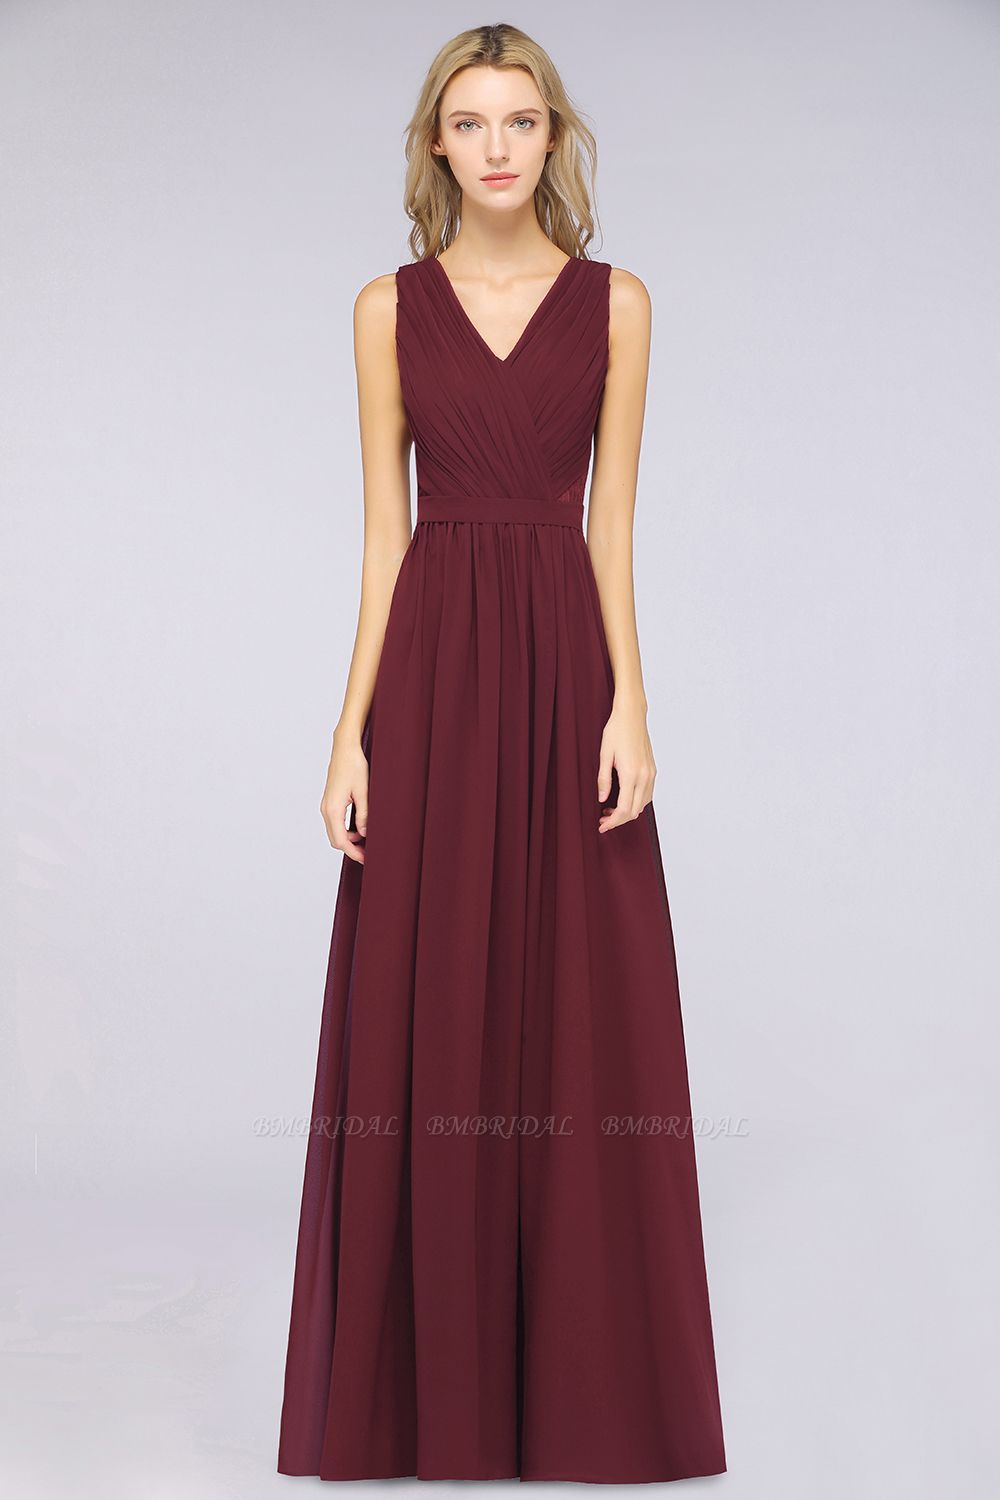 Affordable Burgundy V-Neck Ruffle Bridesmaid Dresses with Lace-Back